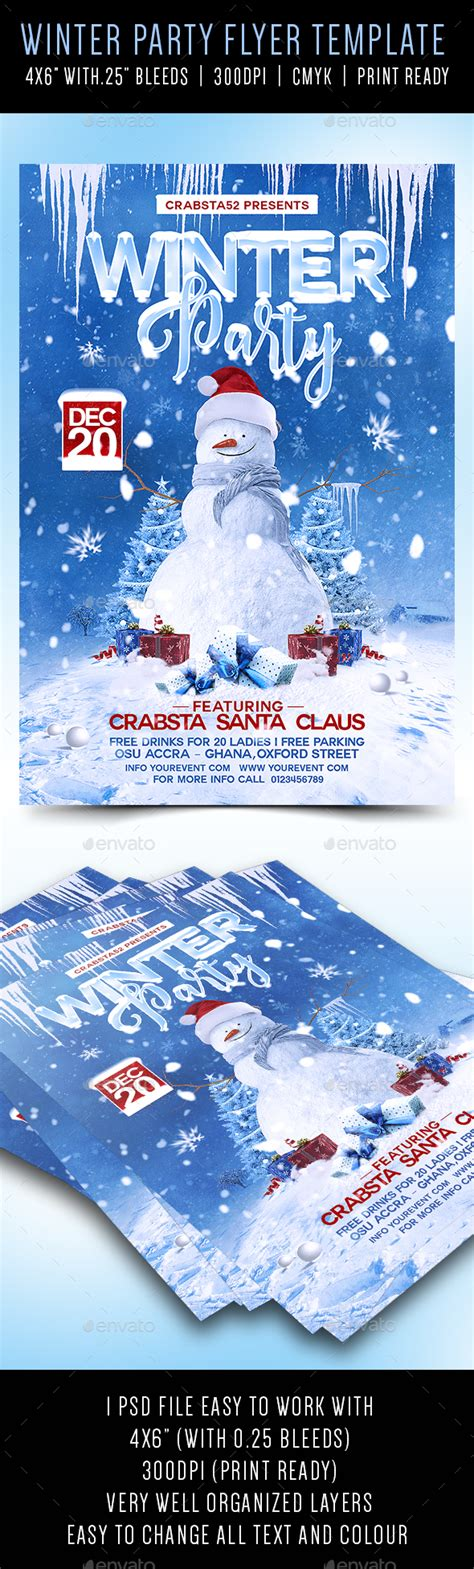 Winter Party Flyer Template By Crabsta52 Graphicriver Winter Flyer Template